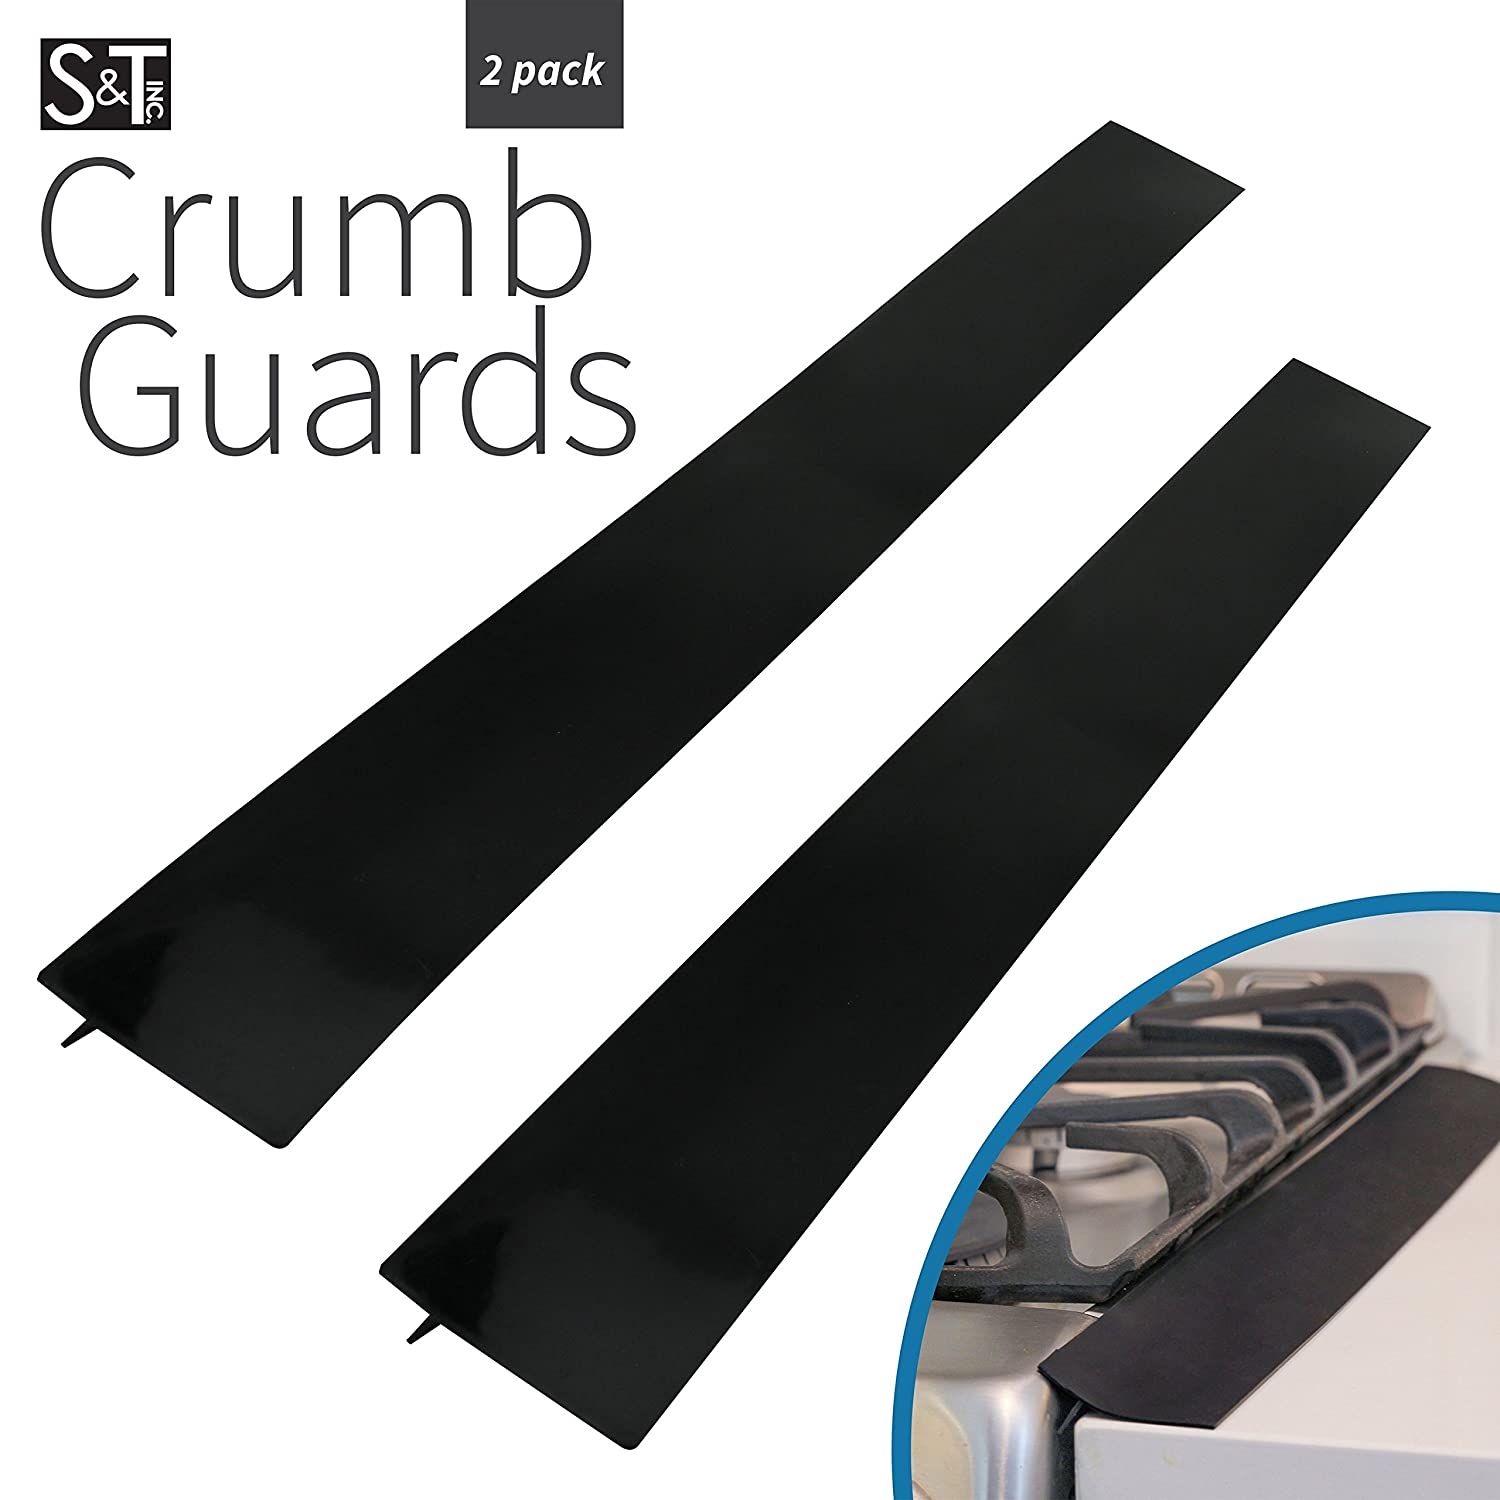 S&T Guards 449101 Silicone Crumb Guards & Stove Gap Cover, Black, 2 Pack